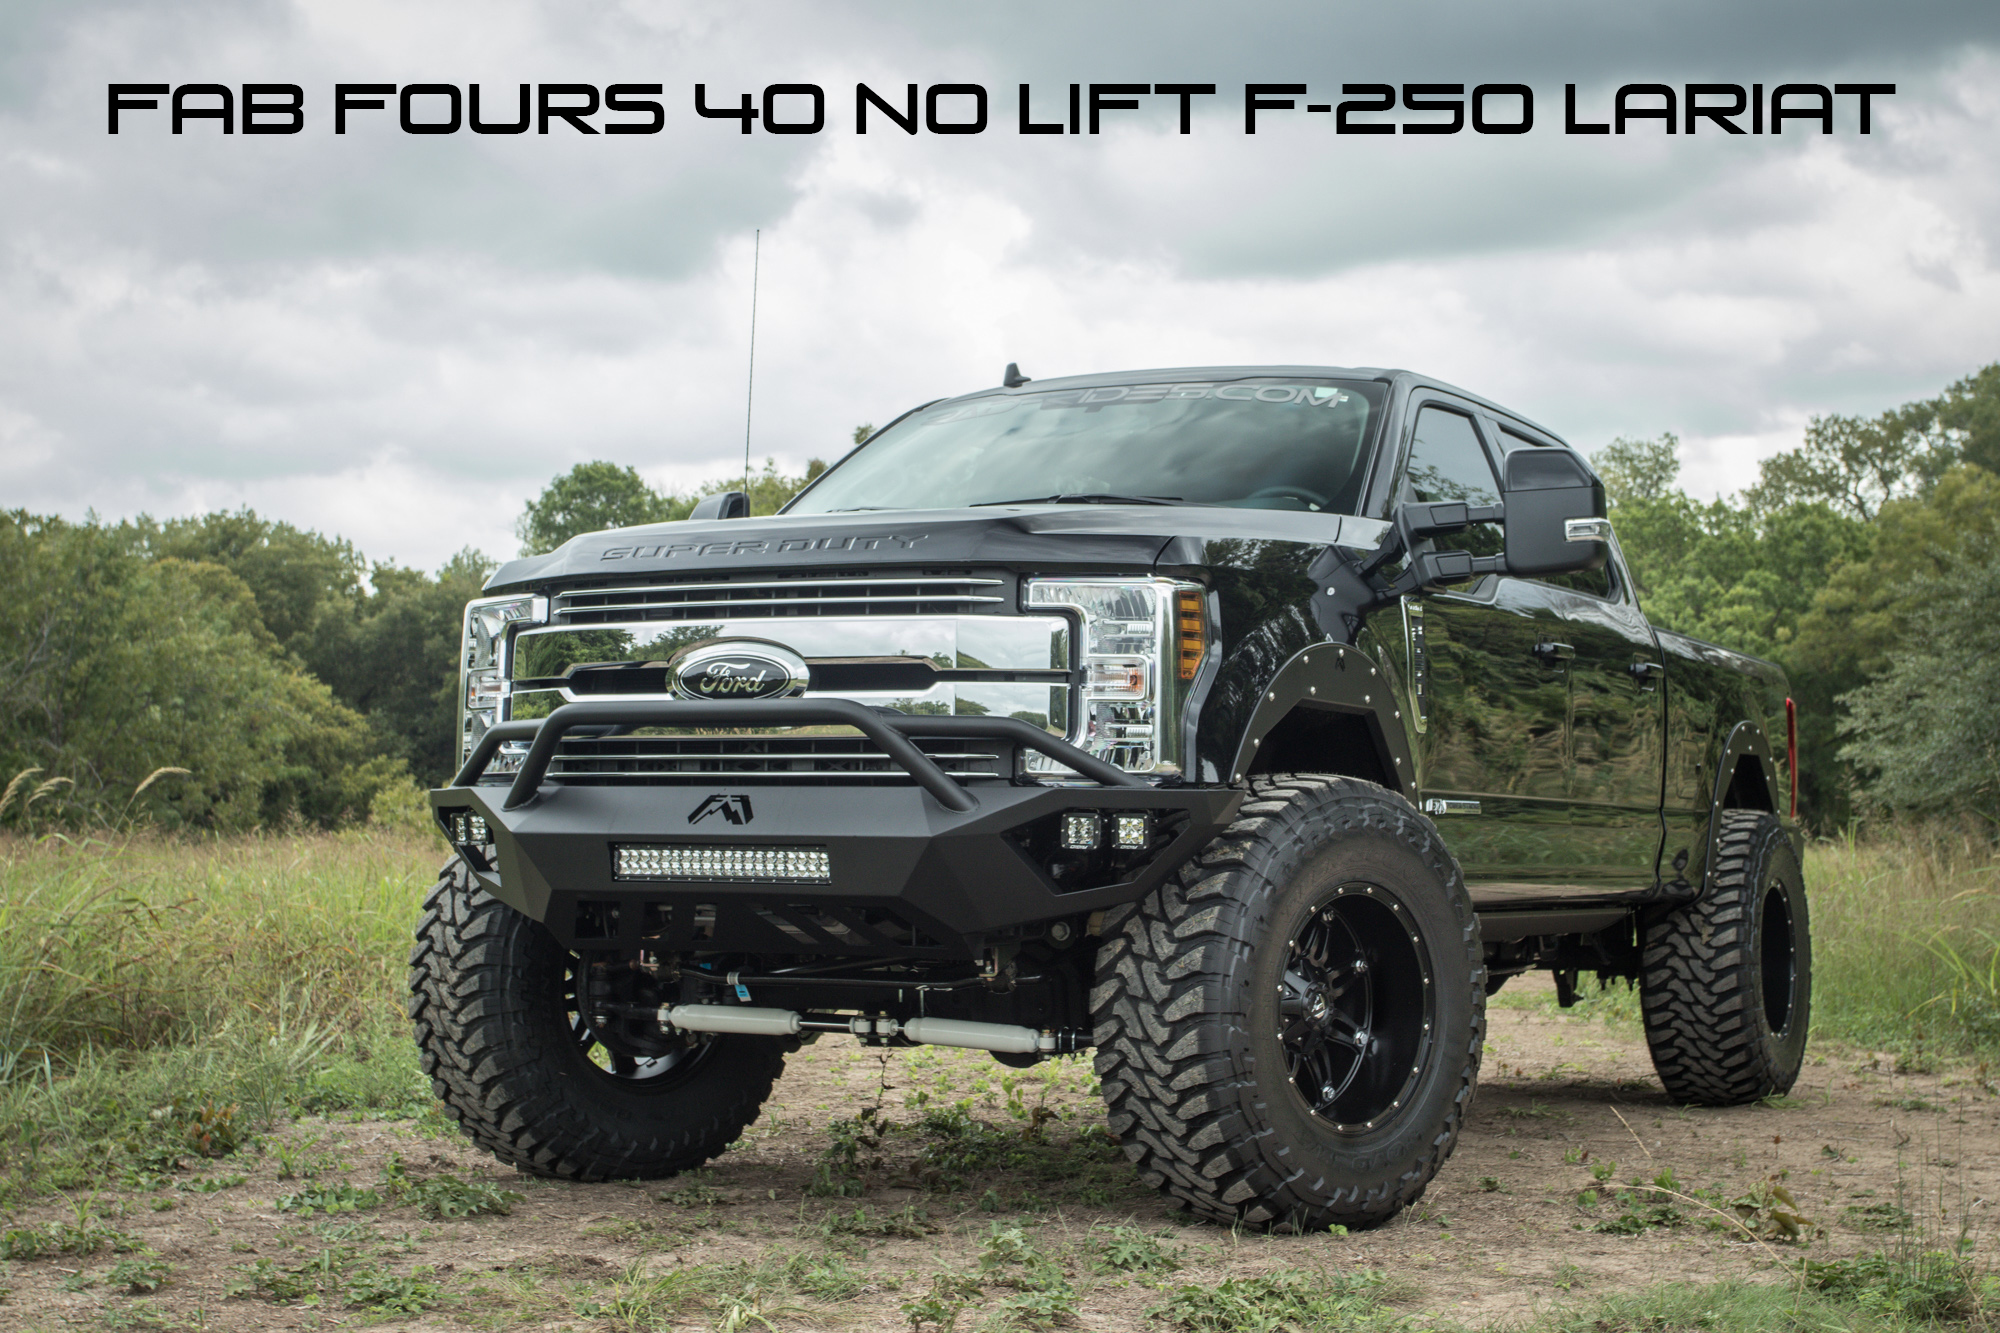 hight resolution of 2018 ford f 250 lariat with fab fours 40 inch tire no lift open fender